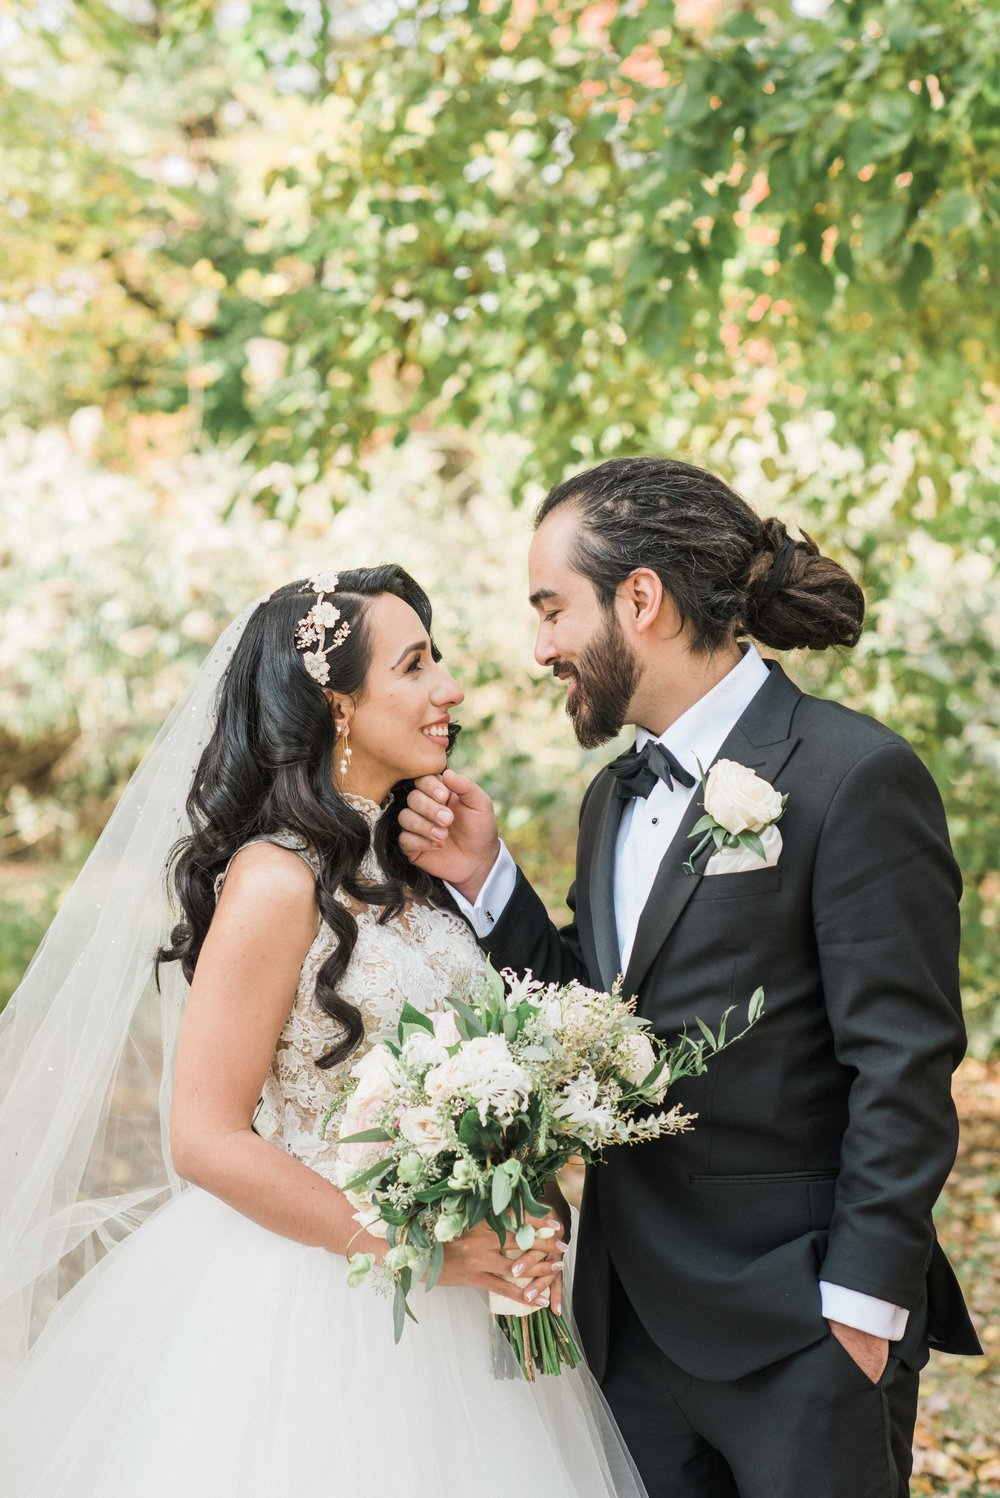 Bride and Groom, Turkish Bride and Groom, Turkish Wedding in New York, Turkish Wedding in Brooklyn, Brooklyn Turkish Wedding, Turkish Couple, Muslim Wedding, Prospect Park, Wedding Flowers, Bridal Bouquet, Black Tie Wedding, Wedding dress, Wedding Inspiration, Wedding gown, groom with long hair, groom with dreadlocks, hair extensions, bridal hair, princess wedding gown